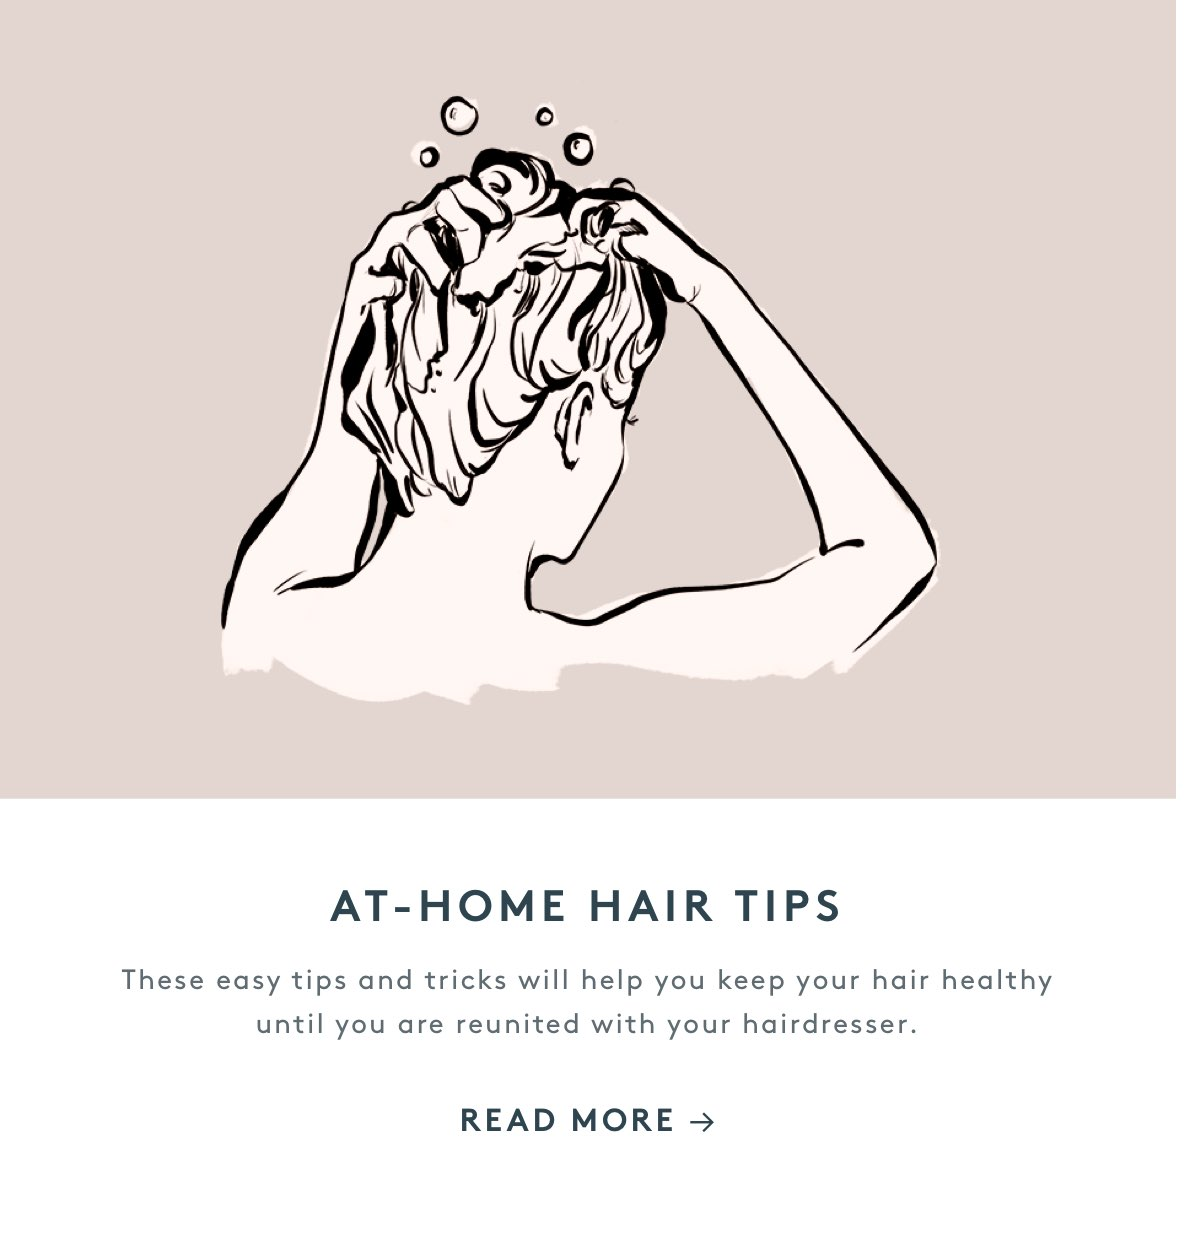 At-Home Hair Tips